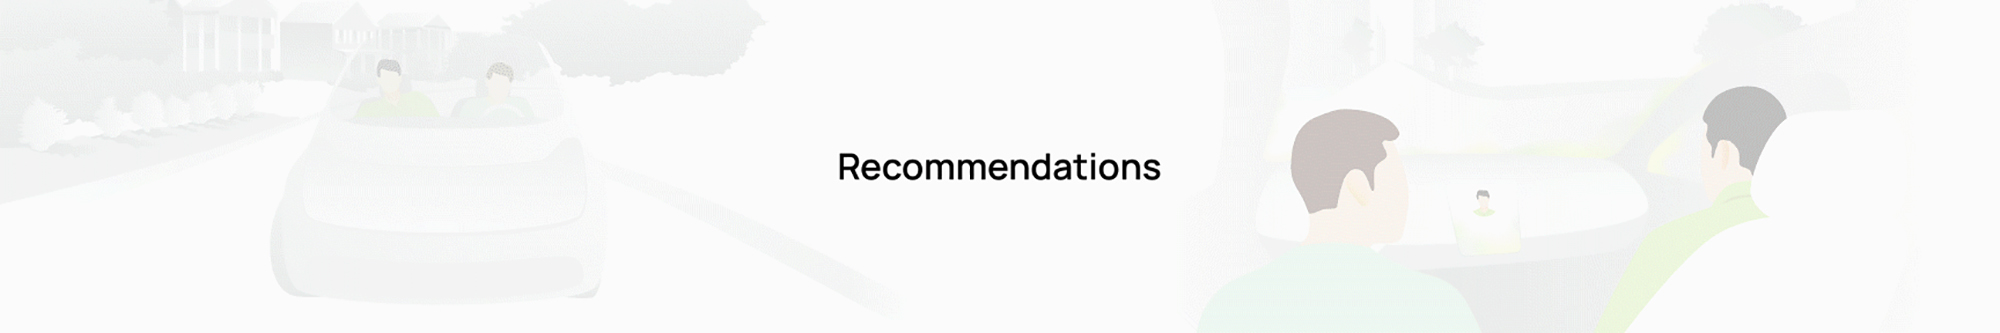 Recommendations animation